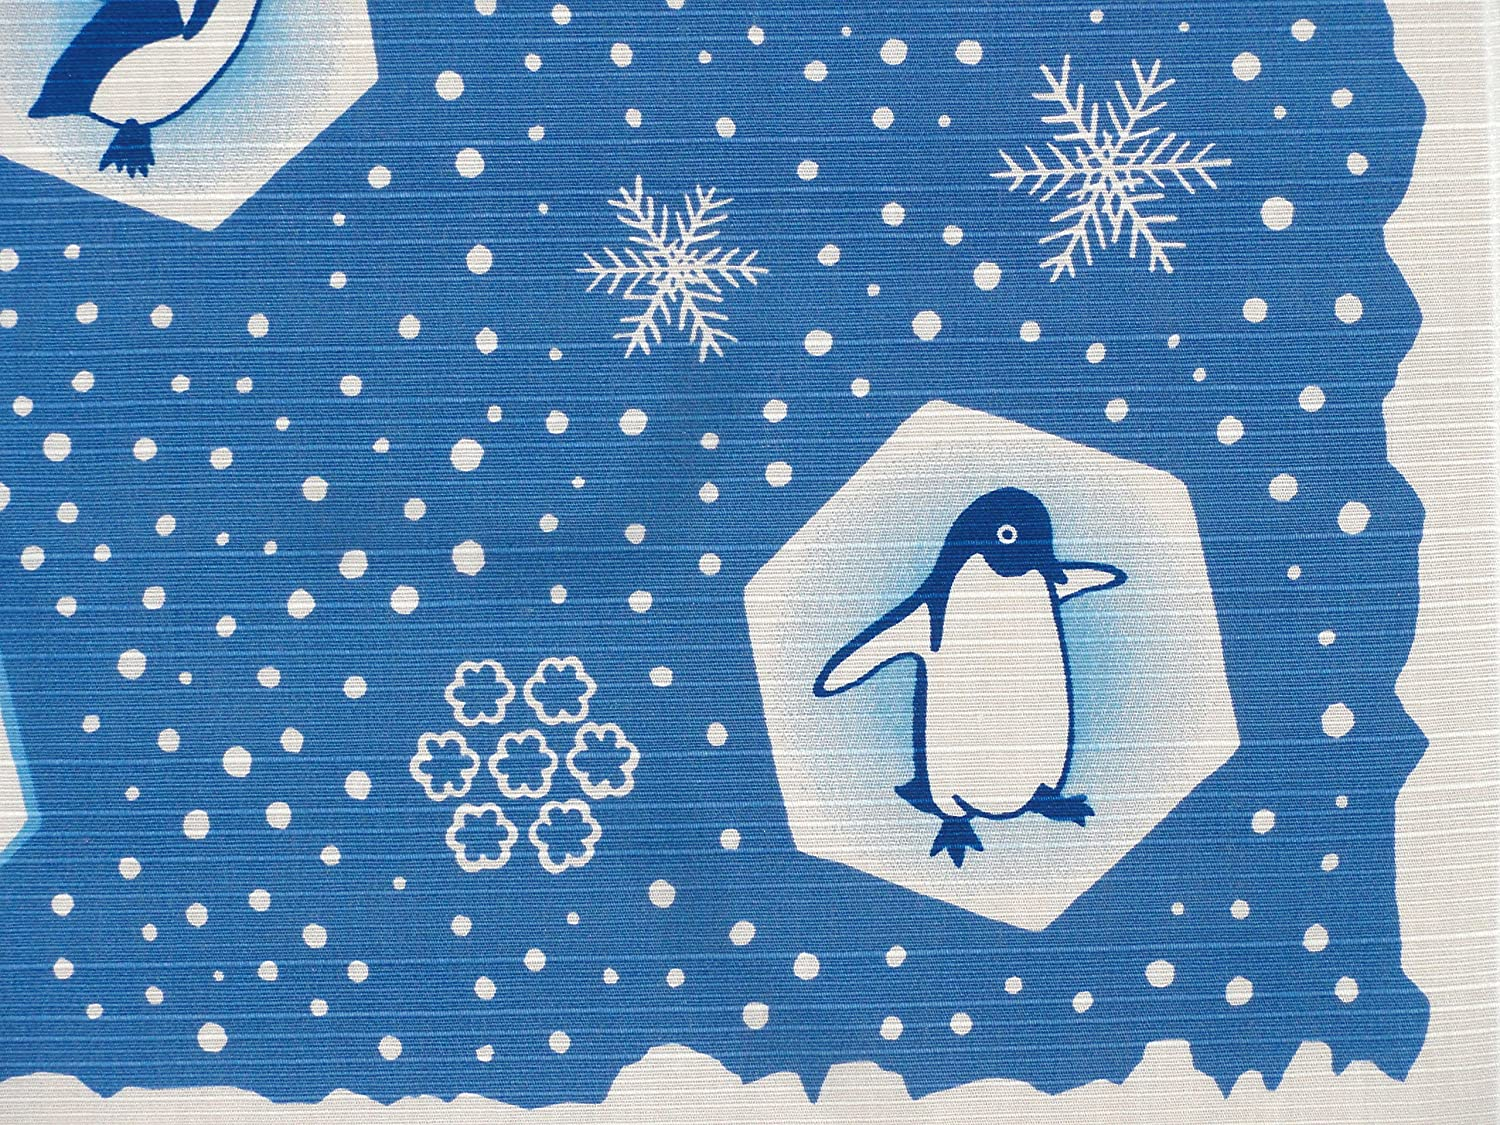 Furoshiki Wrapping Cloth Penguins and Snowflakes Motif Japanese Fabric 50cm